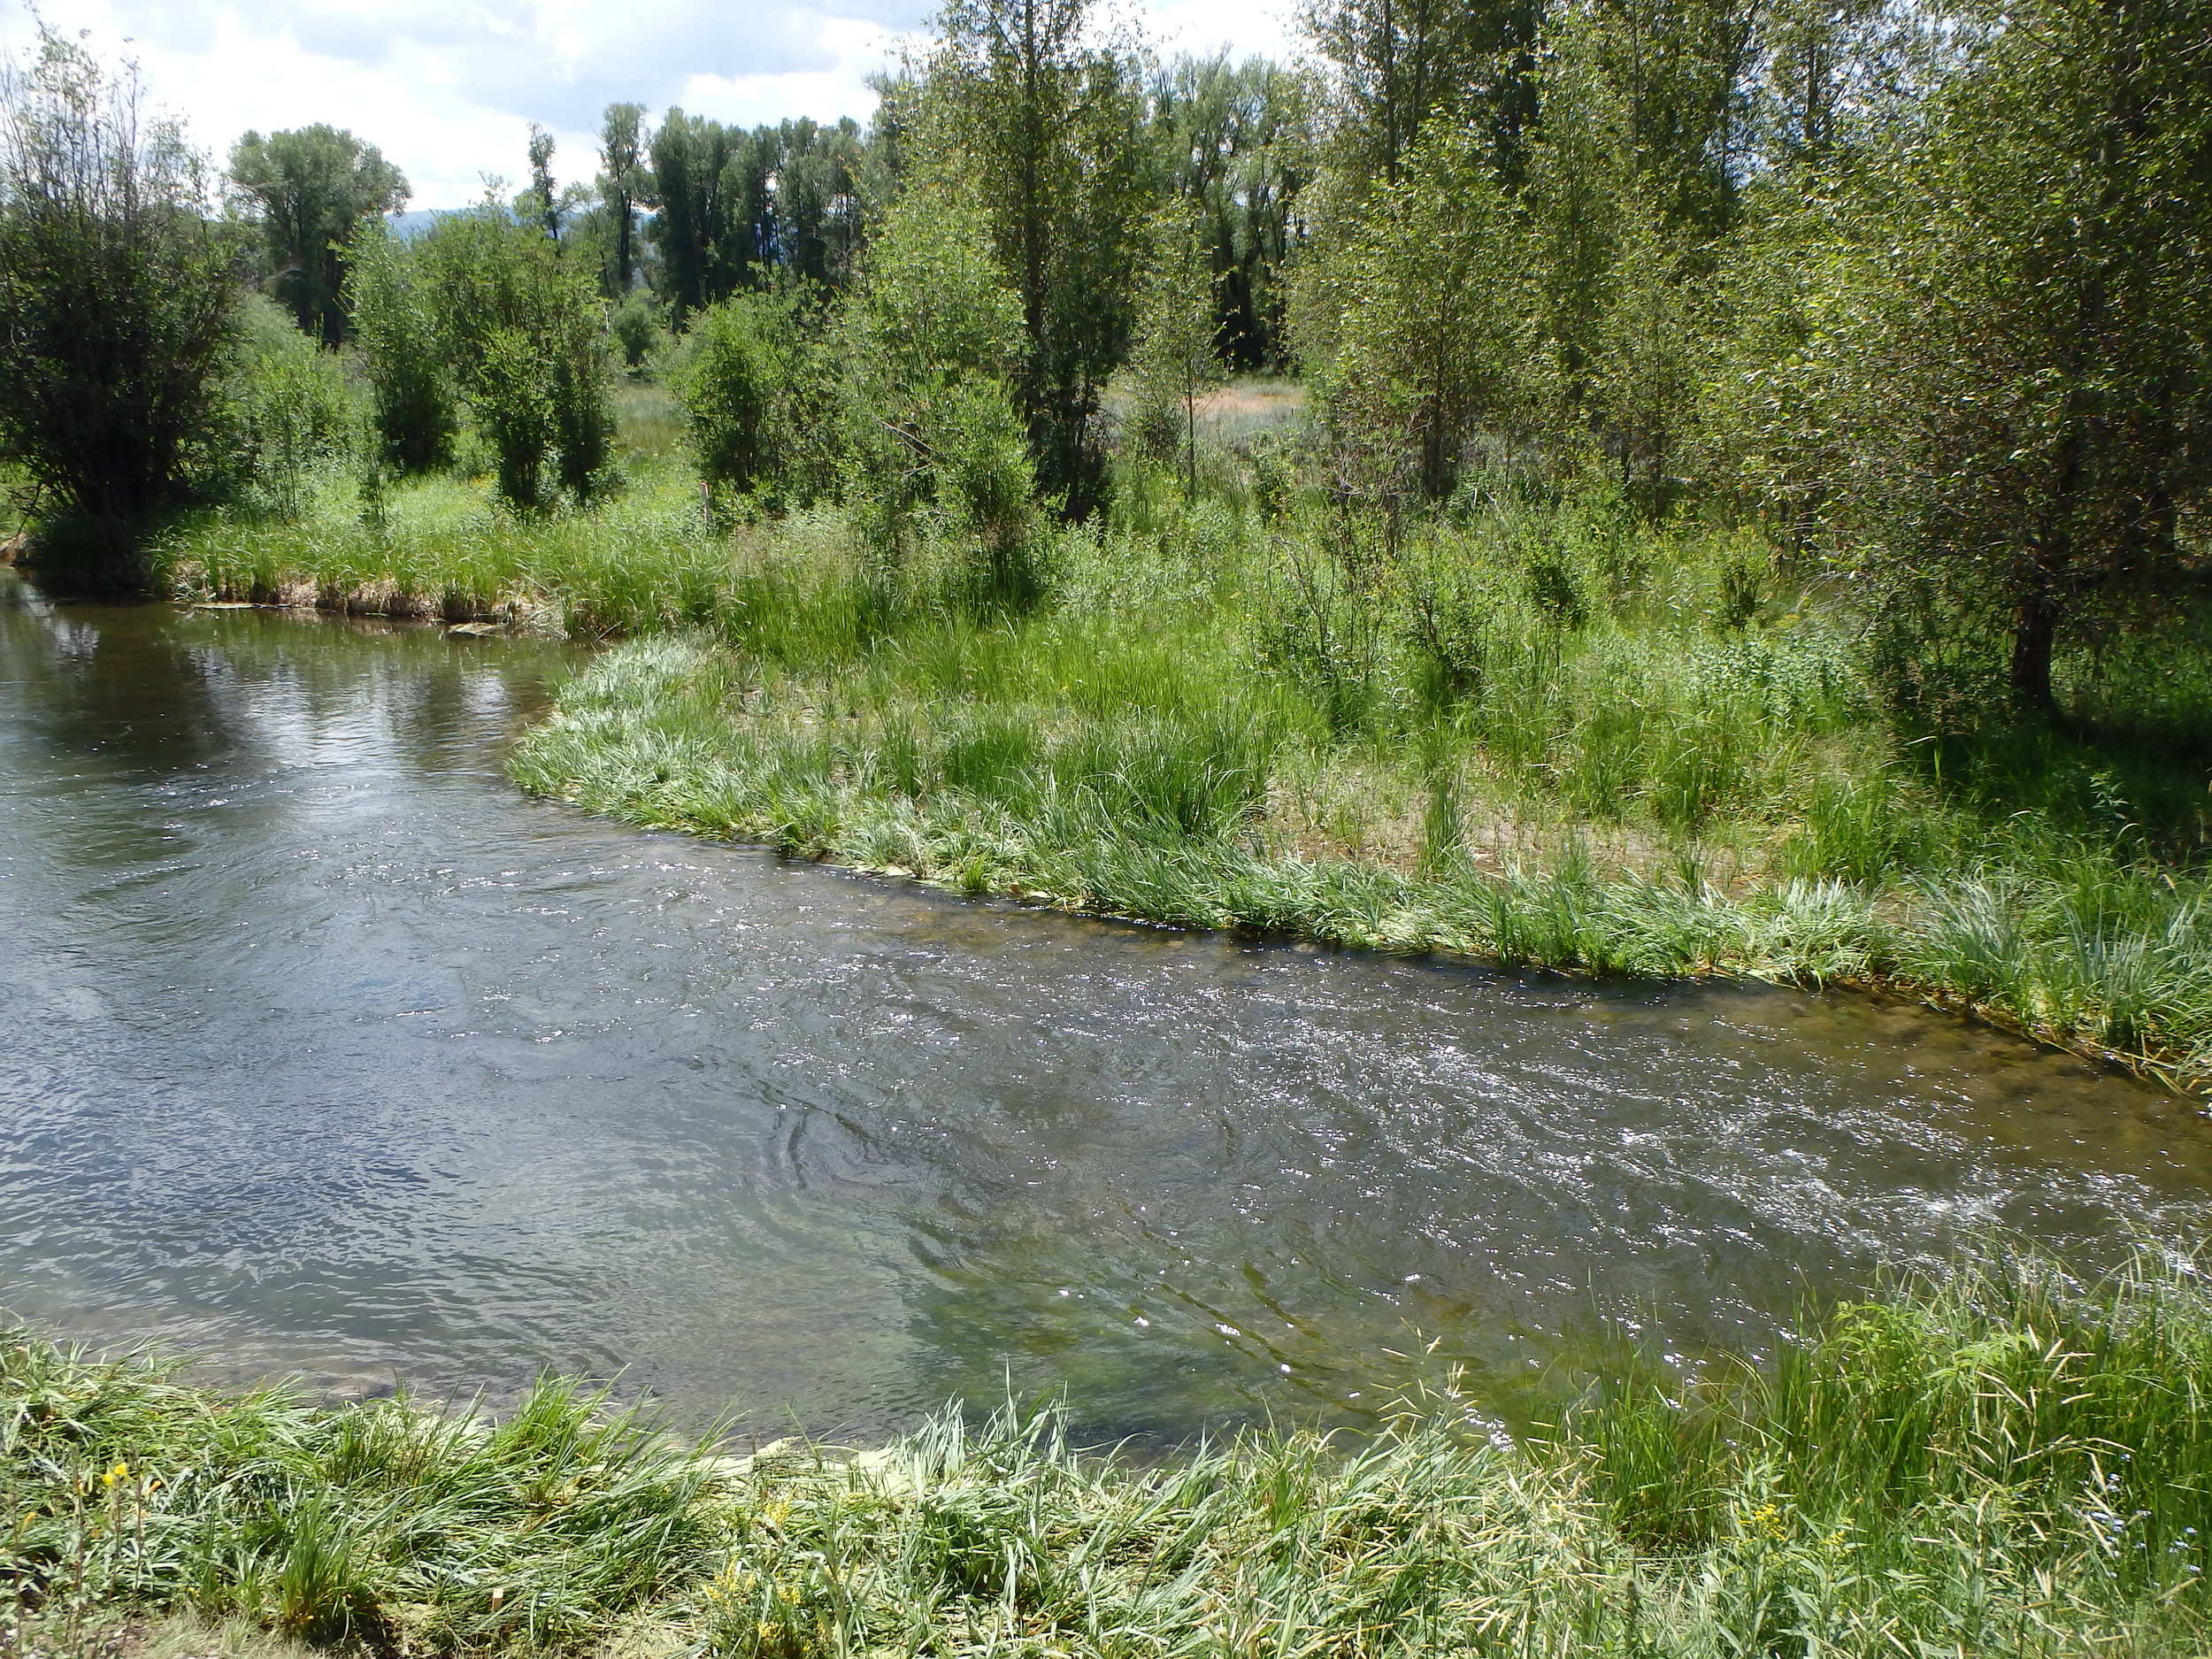 Summer 2015 - The point bar and shelf are revegetated with native wetland species